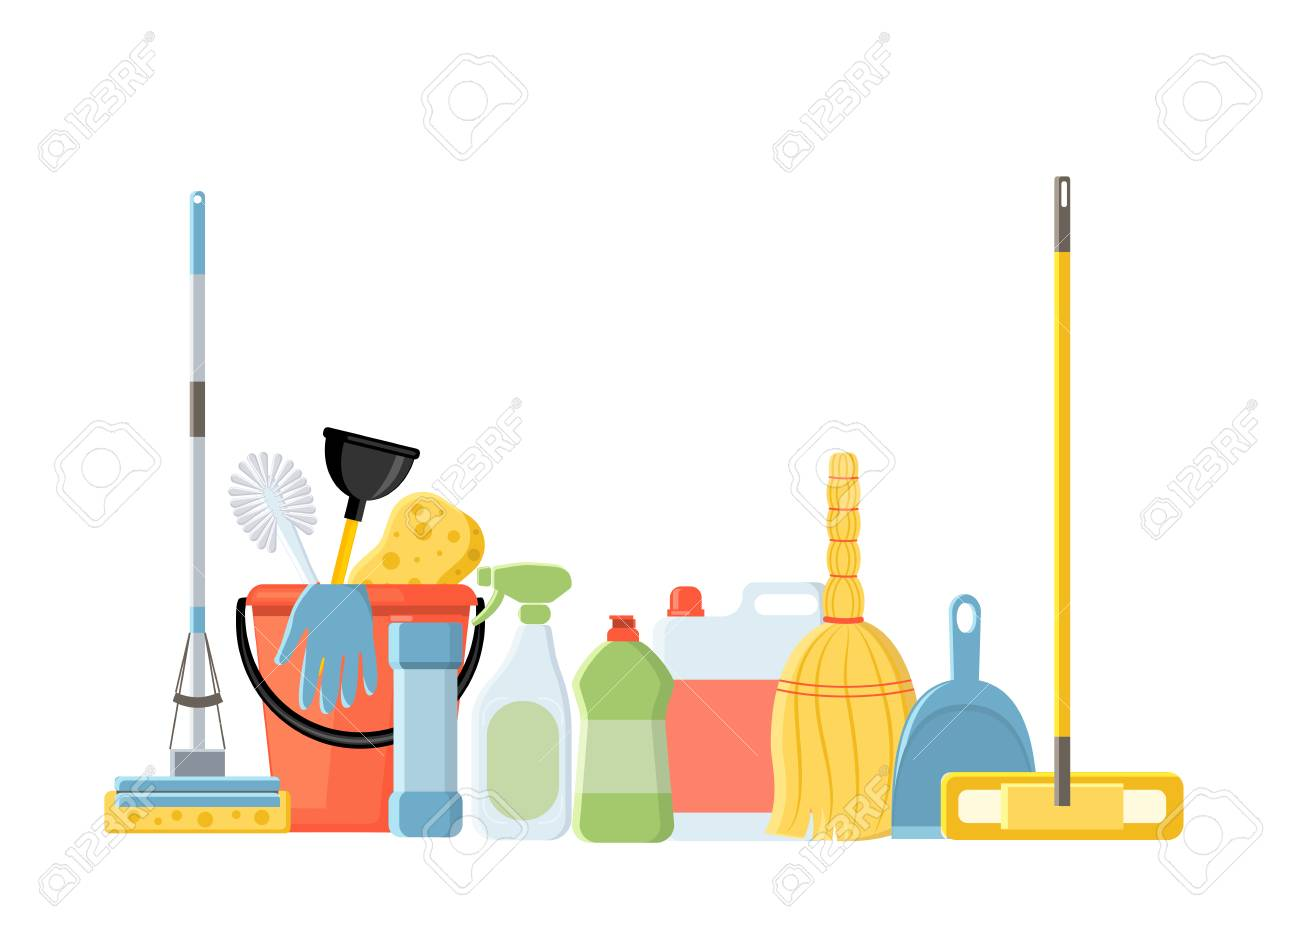 Cleaning tools in flat cartoon style vector illustration isolated on white background. Mop, sponge, detergent, bucket, brush. - 109808823